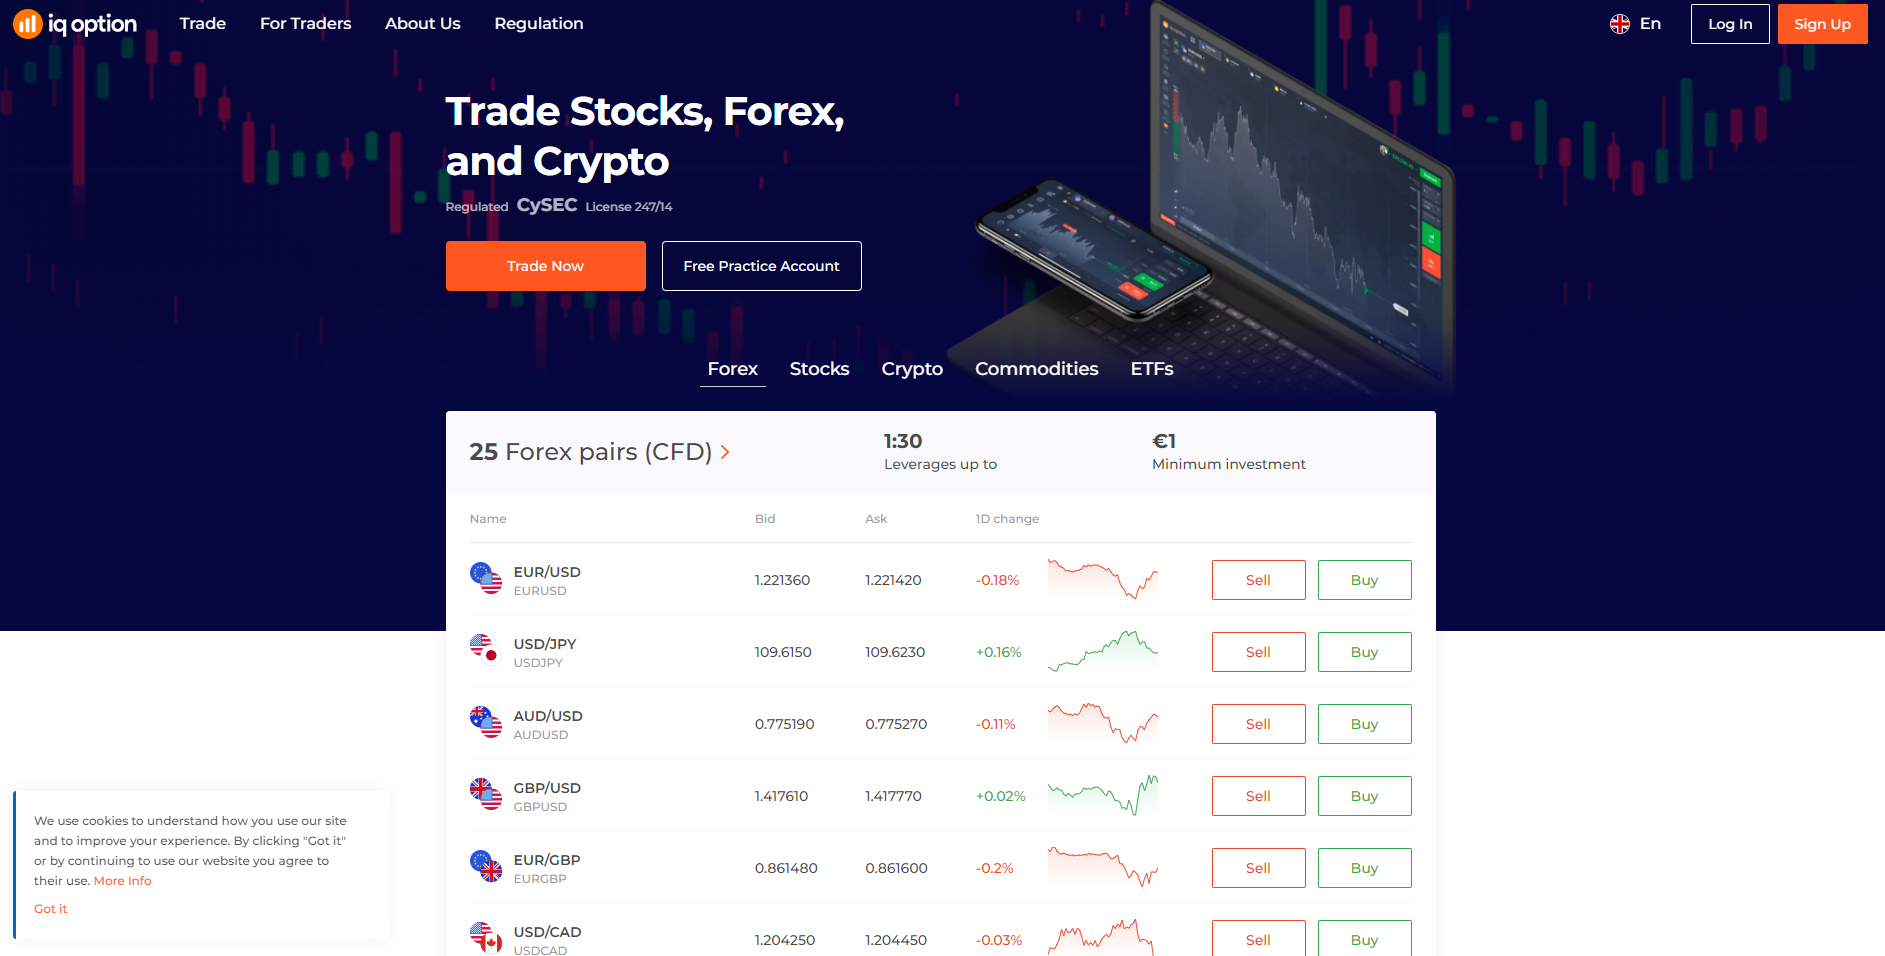 Official website of IQ Option